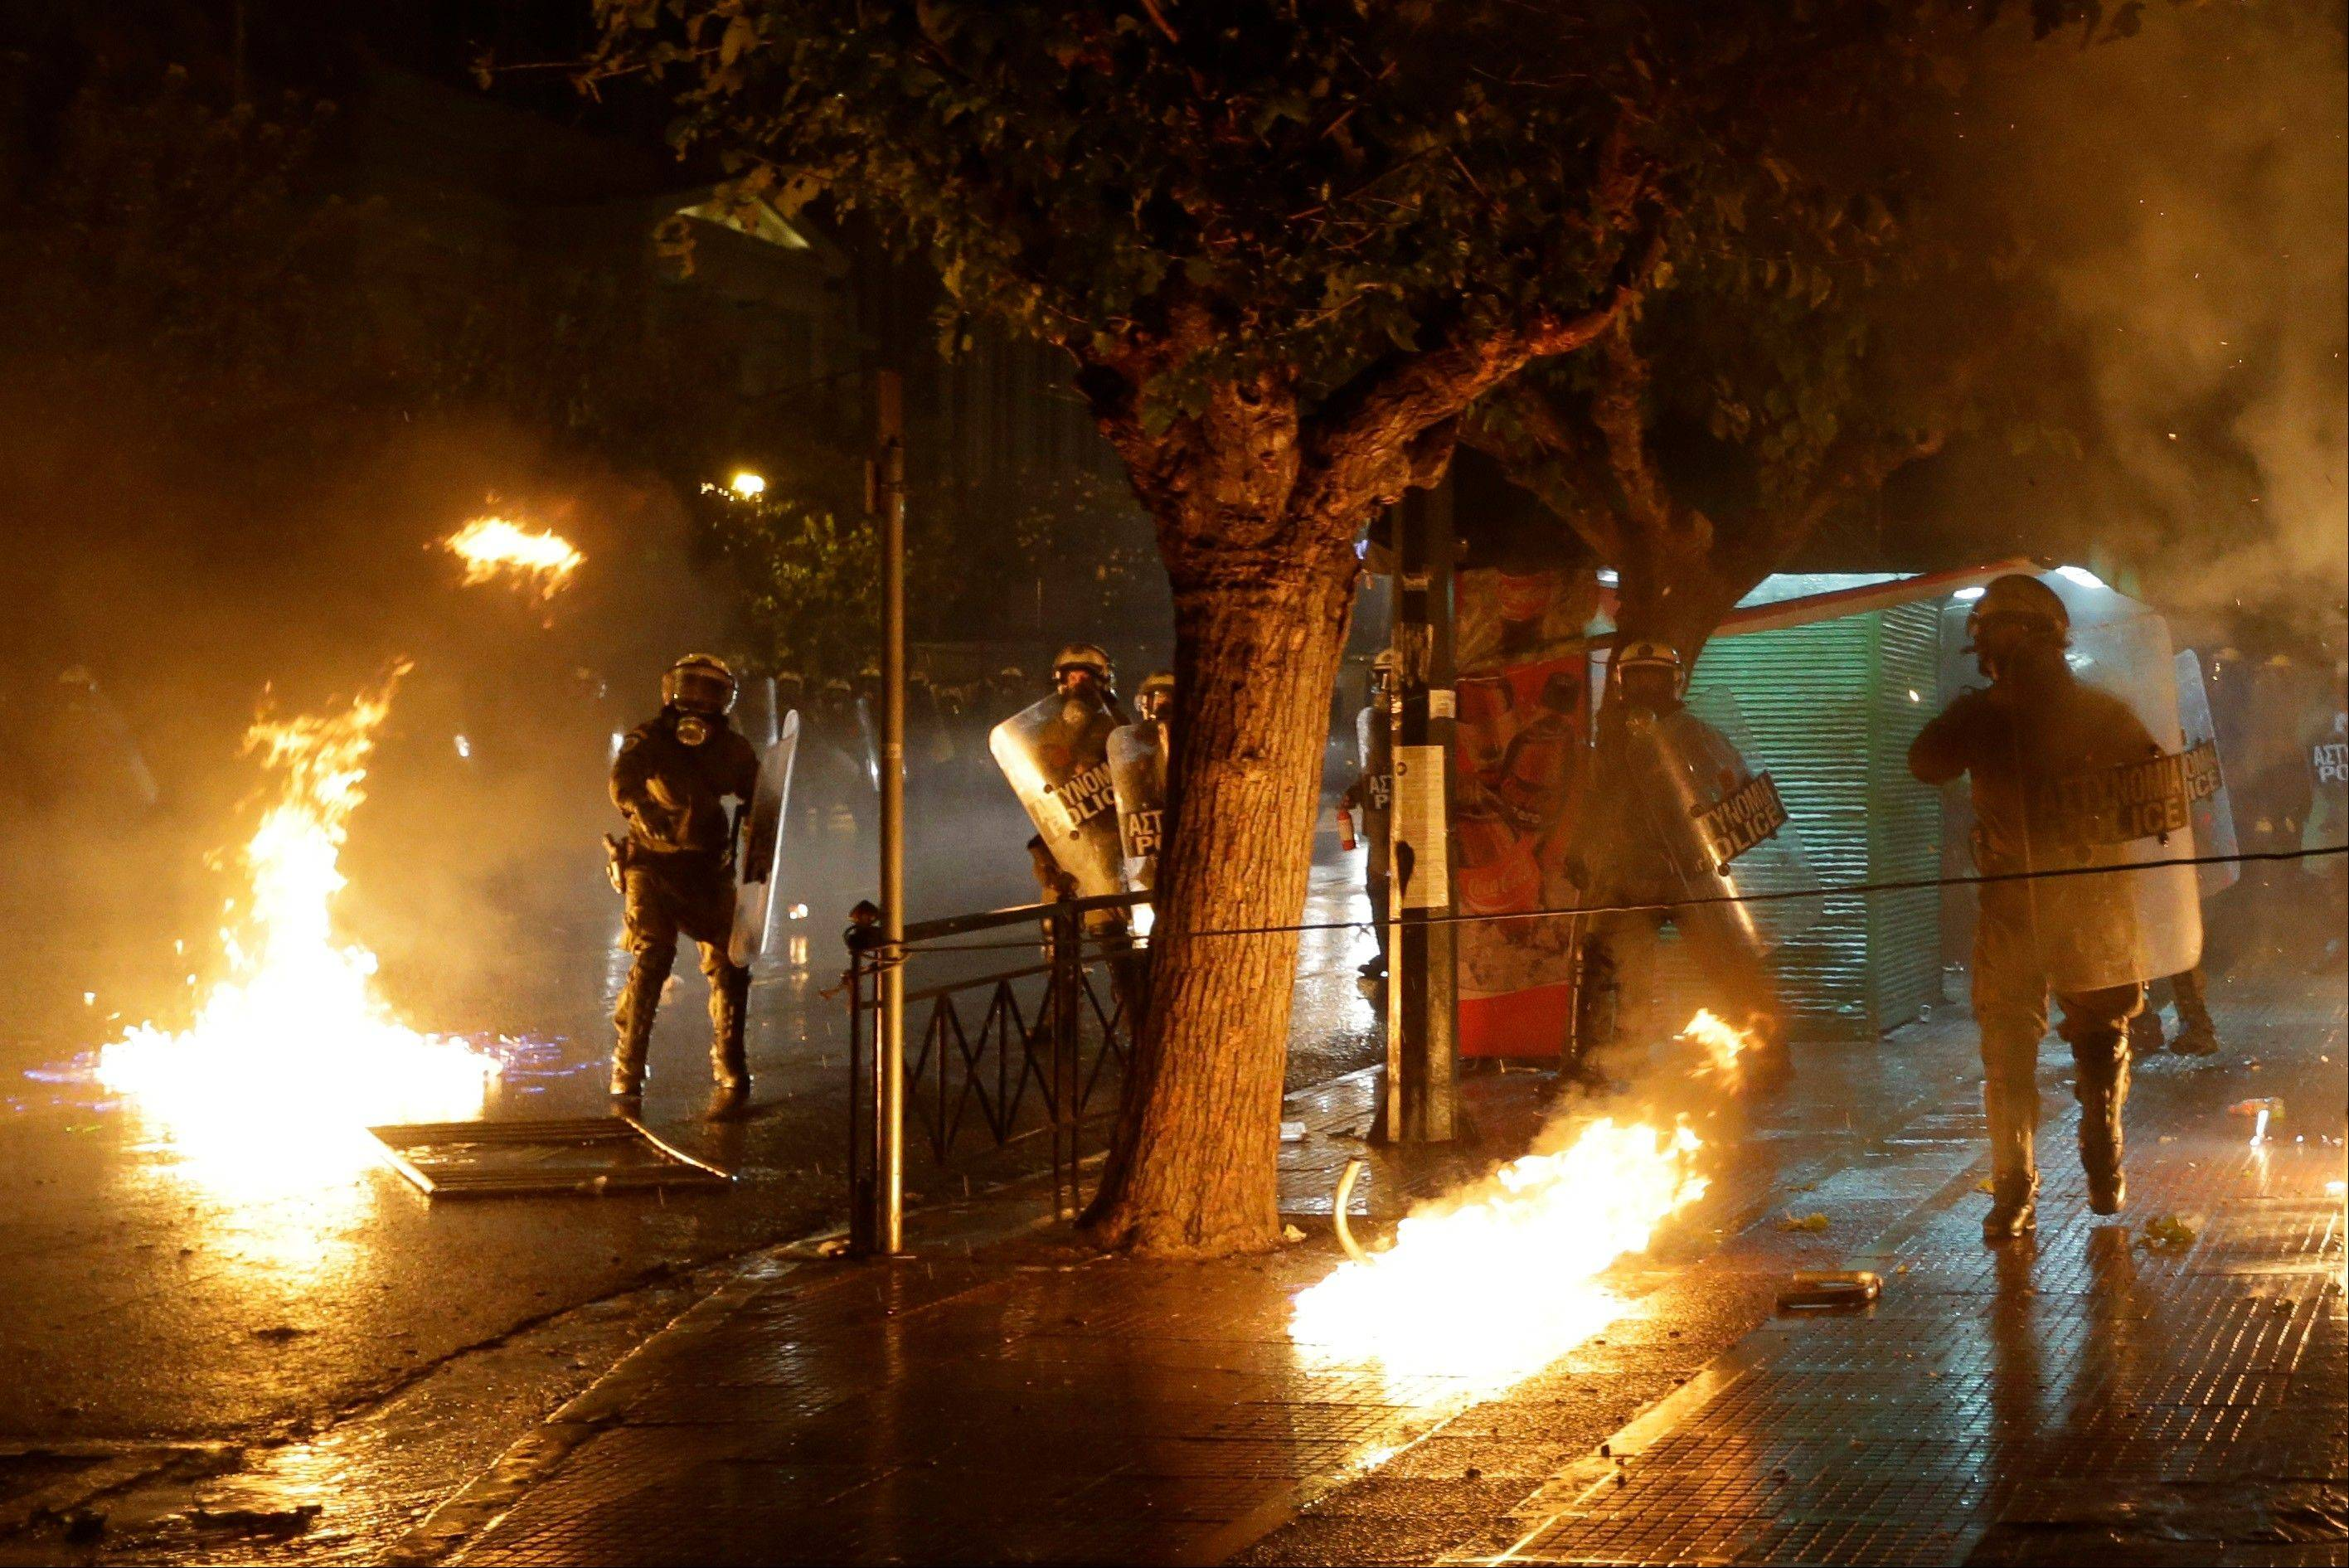 Petrol bombs thrown by protesters explode near riot police in front of the parliament during clashes in Athens, Wednesday Nov. 7, 2012. Greeceís fragile coalition government faces its toughest test so far when lawmakers vote later Wednesday on new painful austerity measures demanded to keep the country afloat, on the second day of a nationwide general strike. The 13.5 billion euro ($17.3 billion) package is expected to scrape through Parliament, following a hasty one-day debate.